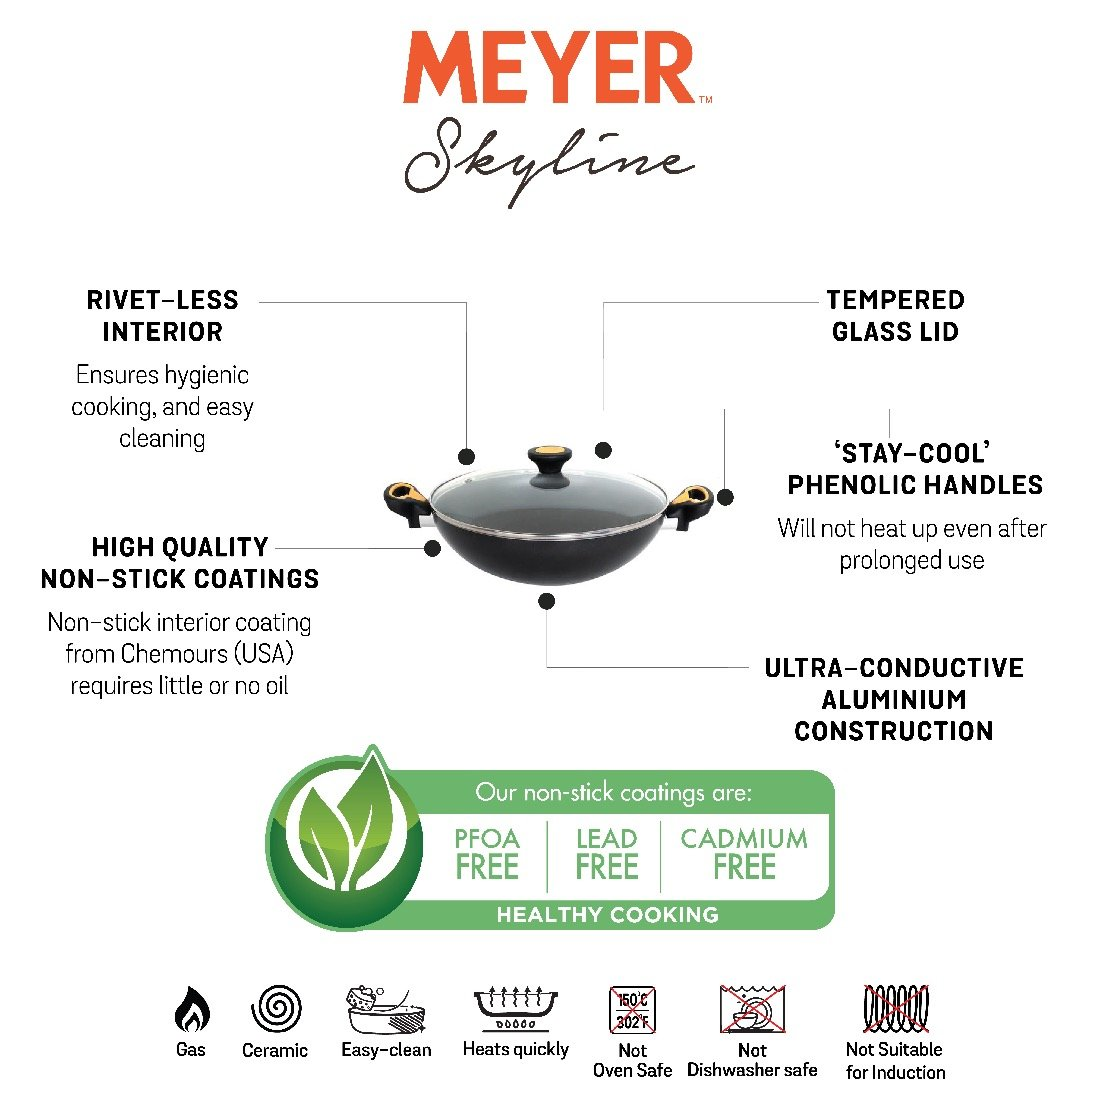 Meyer Skyline Aluminium Non-Stick Kadai/Wok 28cm, Grey - Pots and Pans